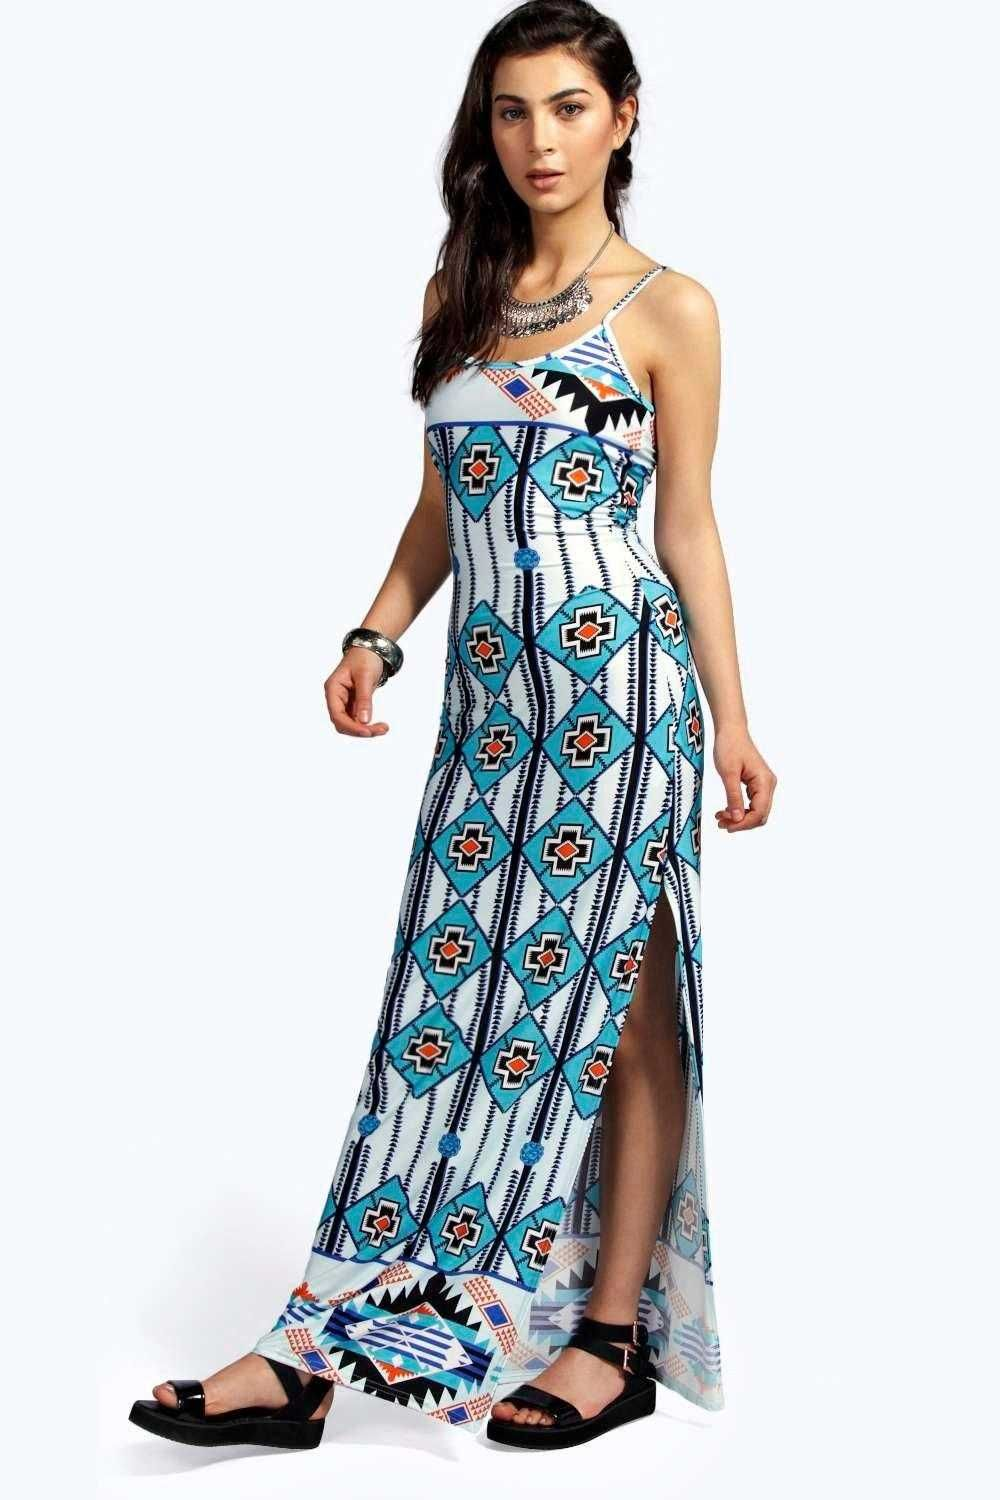 57eac92e7f190 Discover our collection of dresses for women and find your perfect dress  online today! Be it a red